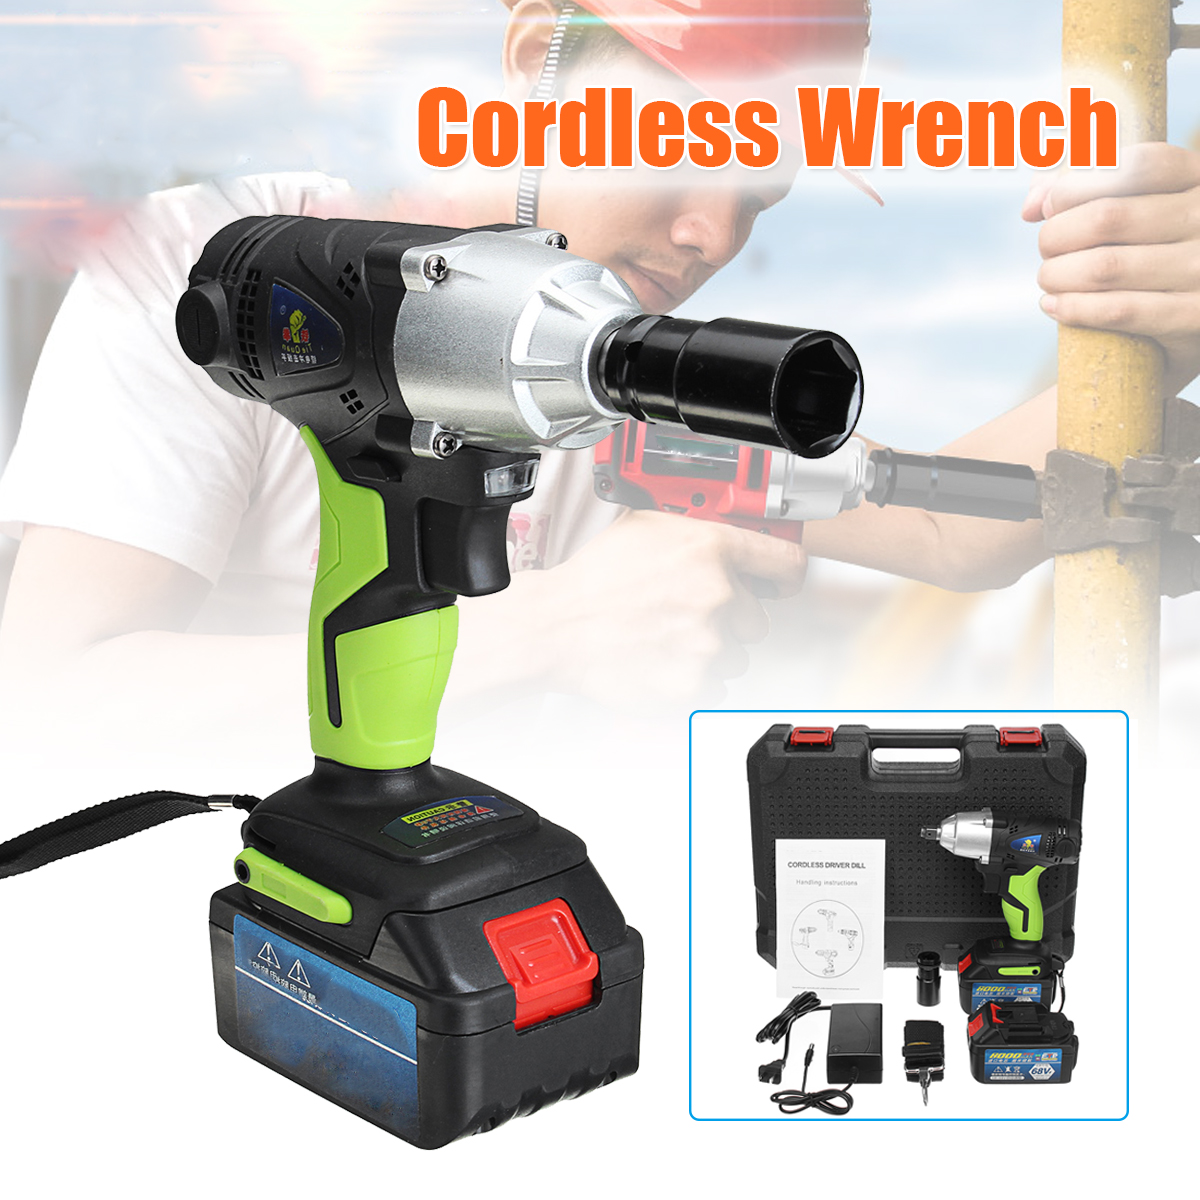 8 0Ah 68V Cordless Electric Wrench Rechargeable Li Battery Hand Drill Driver Drill Power Wrench Tools